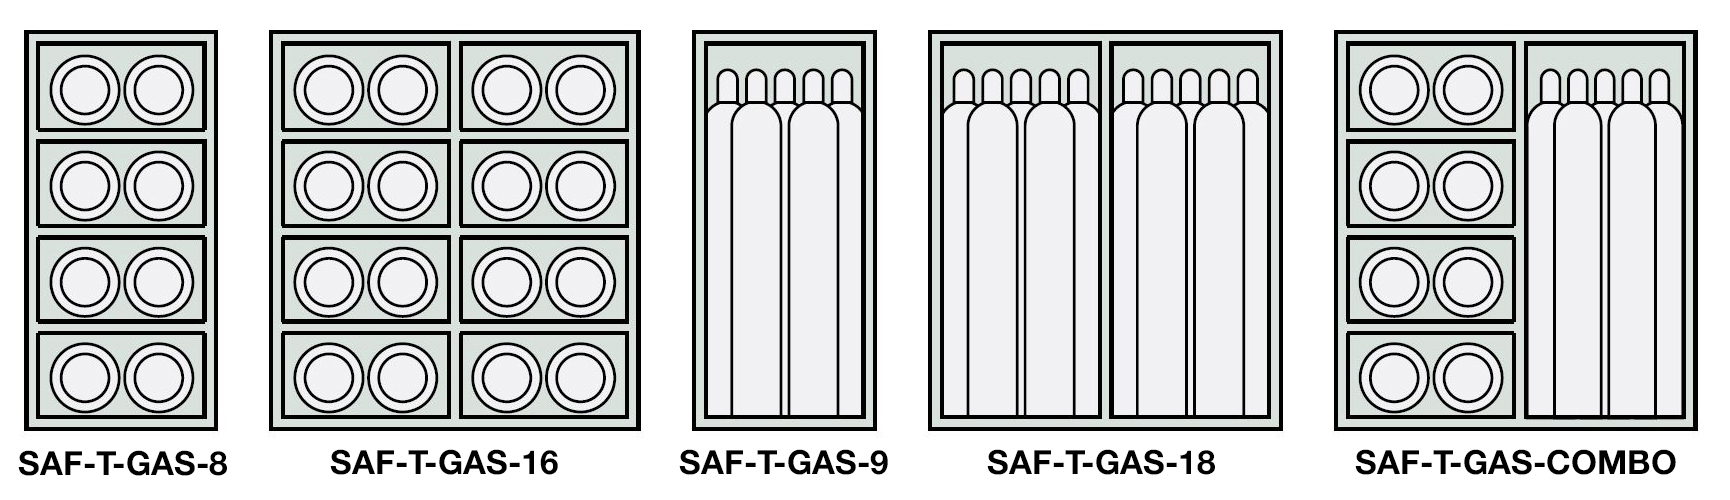 Saf-T-Gas Gas Cylinder Cabinets Illinois Engineered